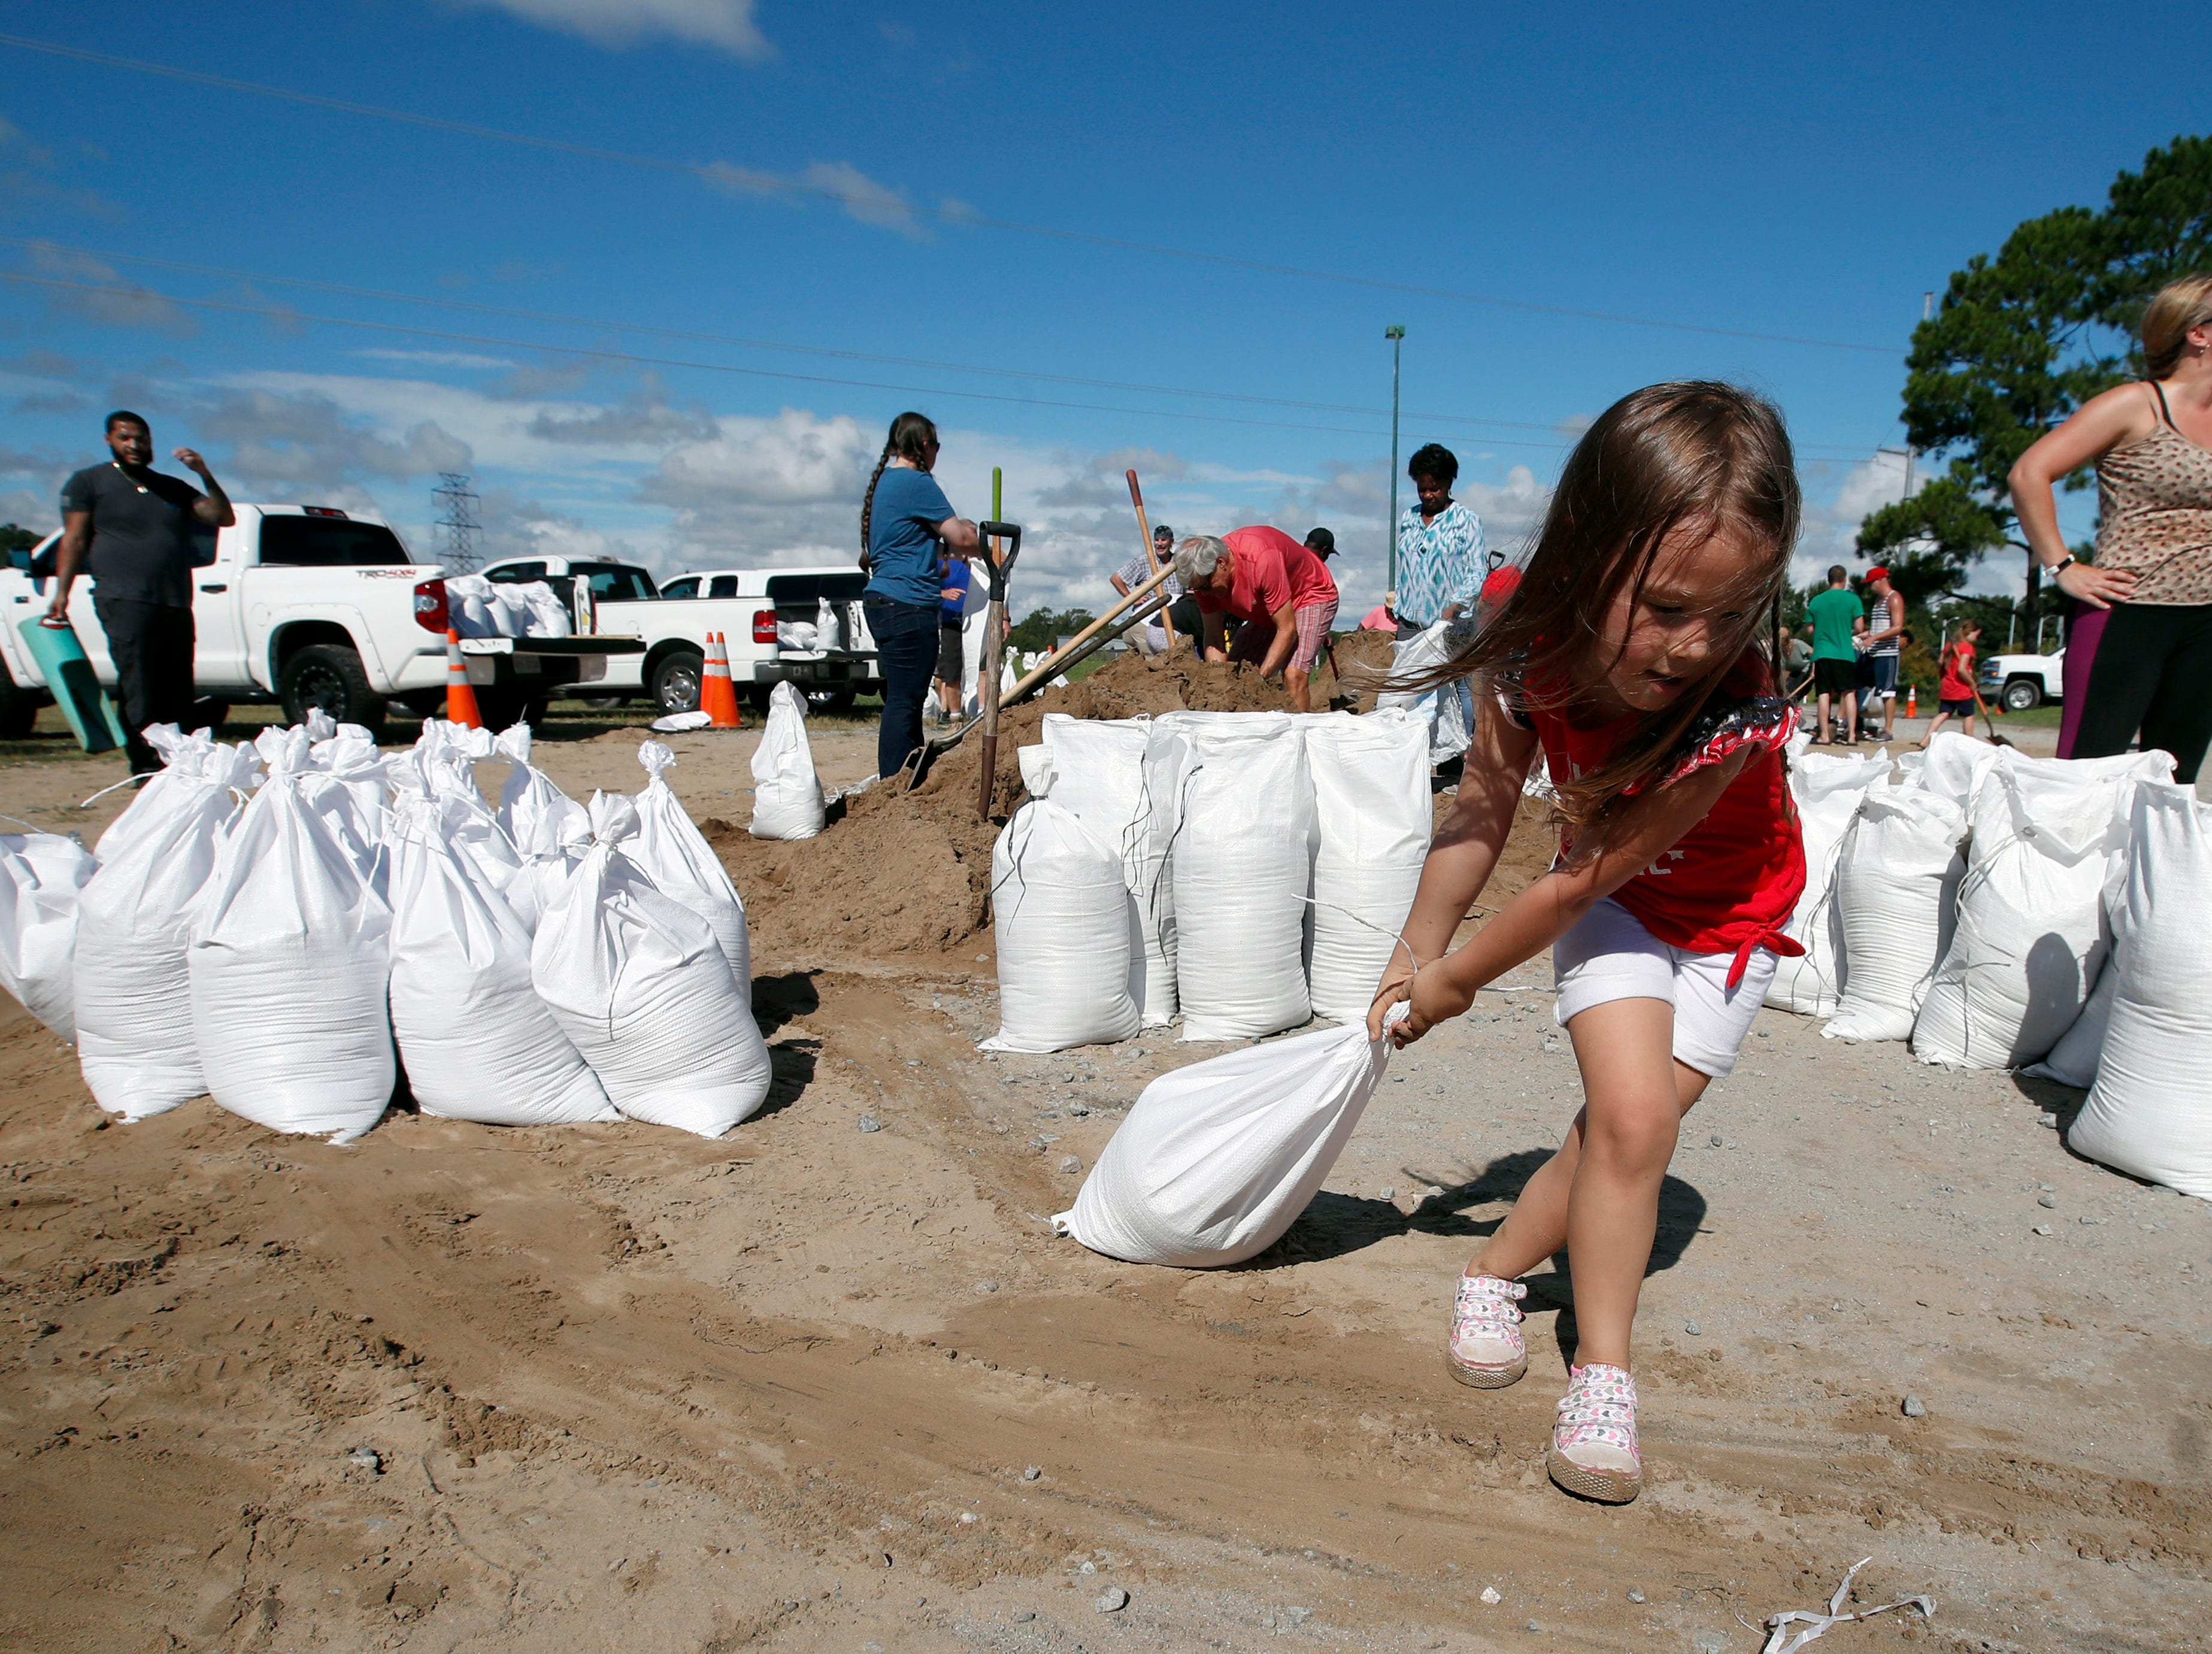 Chloe Heeden, 4, from Virginia Beach, Va., drags a sandbag to her father's car, Wednesday, Sept. 12, 2018, in Virginia Beach, Va., as Hurricane Florence moves towards the eastern shore. The National Hurricane Center's projected track had Florence hovering off the southern North Carolina coast from Thursday night until landfall Saturday morning or so, about a day later than previously expected. The track also shifted somewhat south and west, throwing Georgia into peril as Florence moves inland.